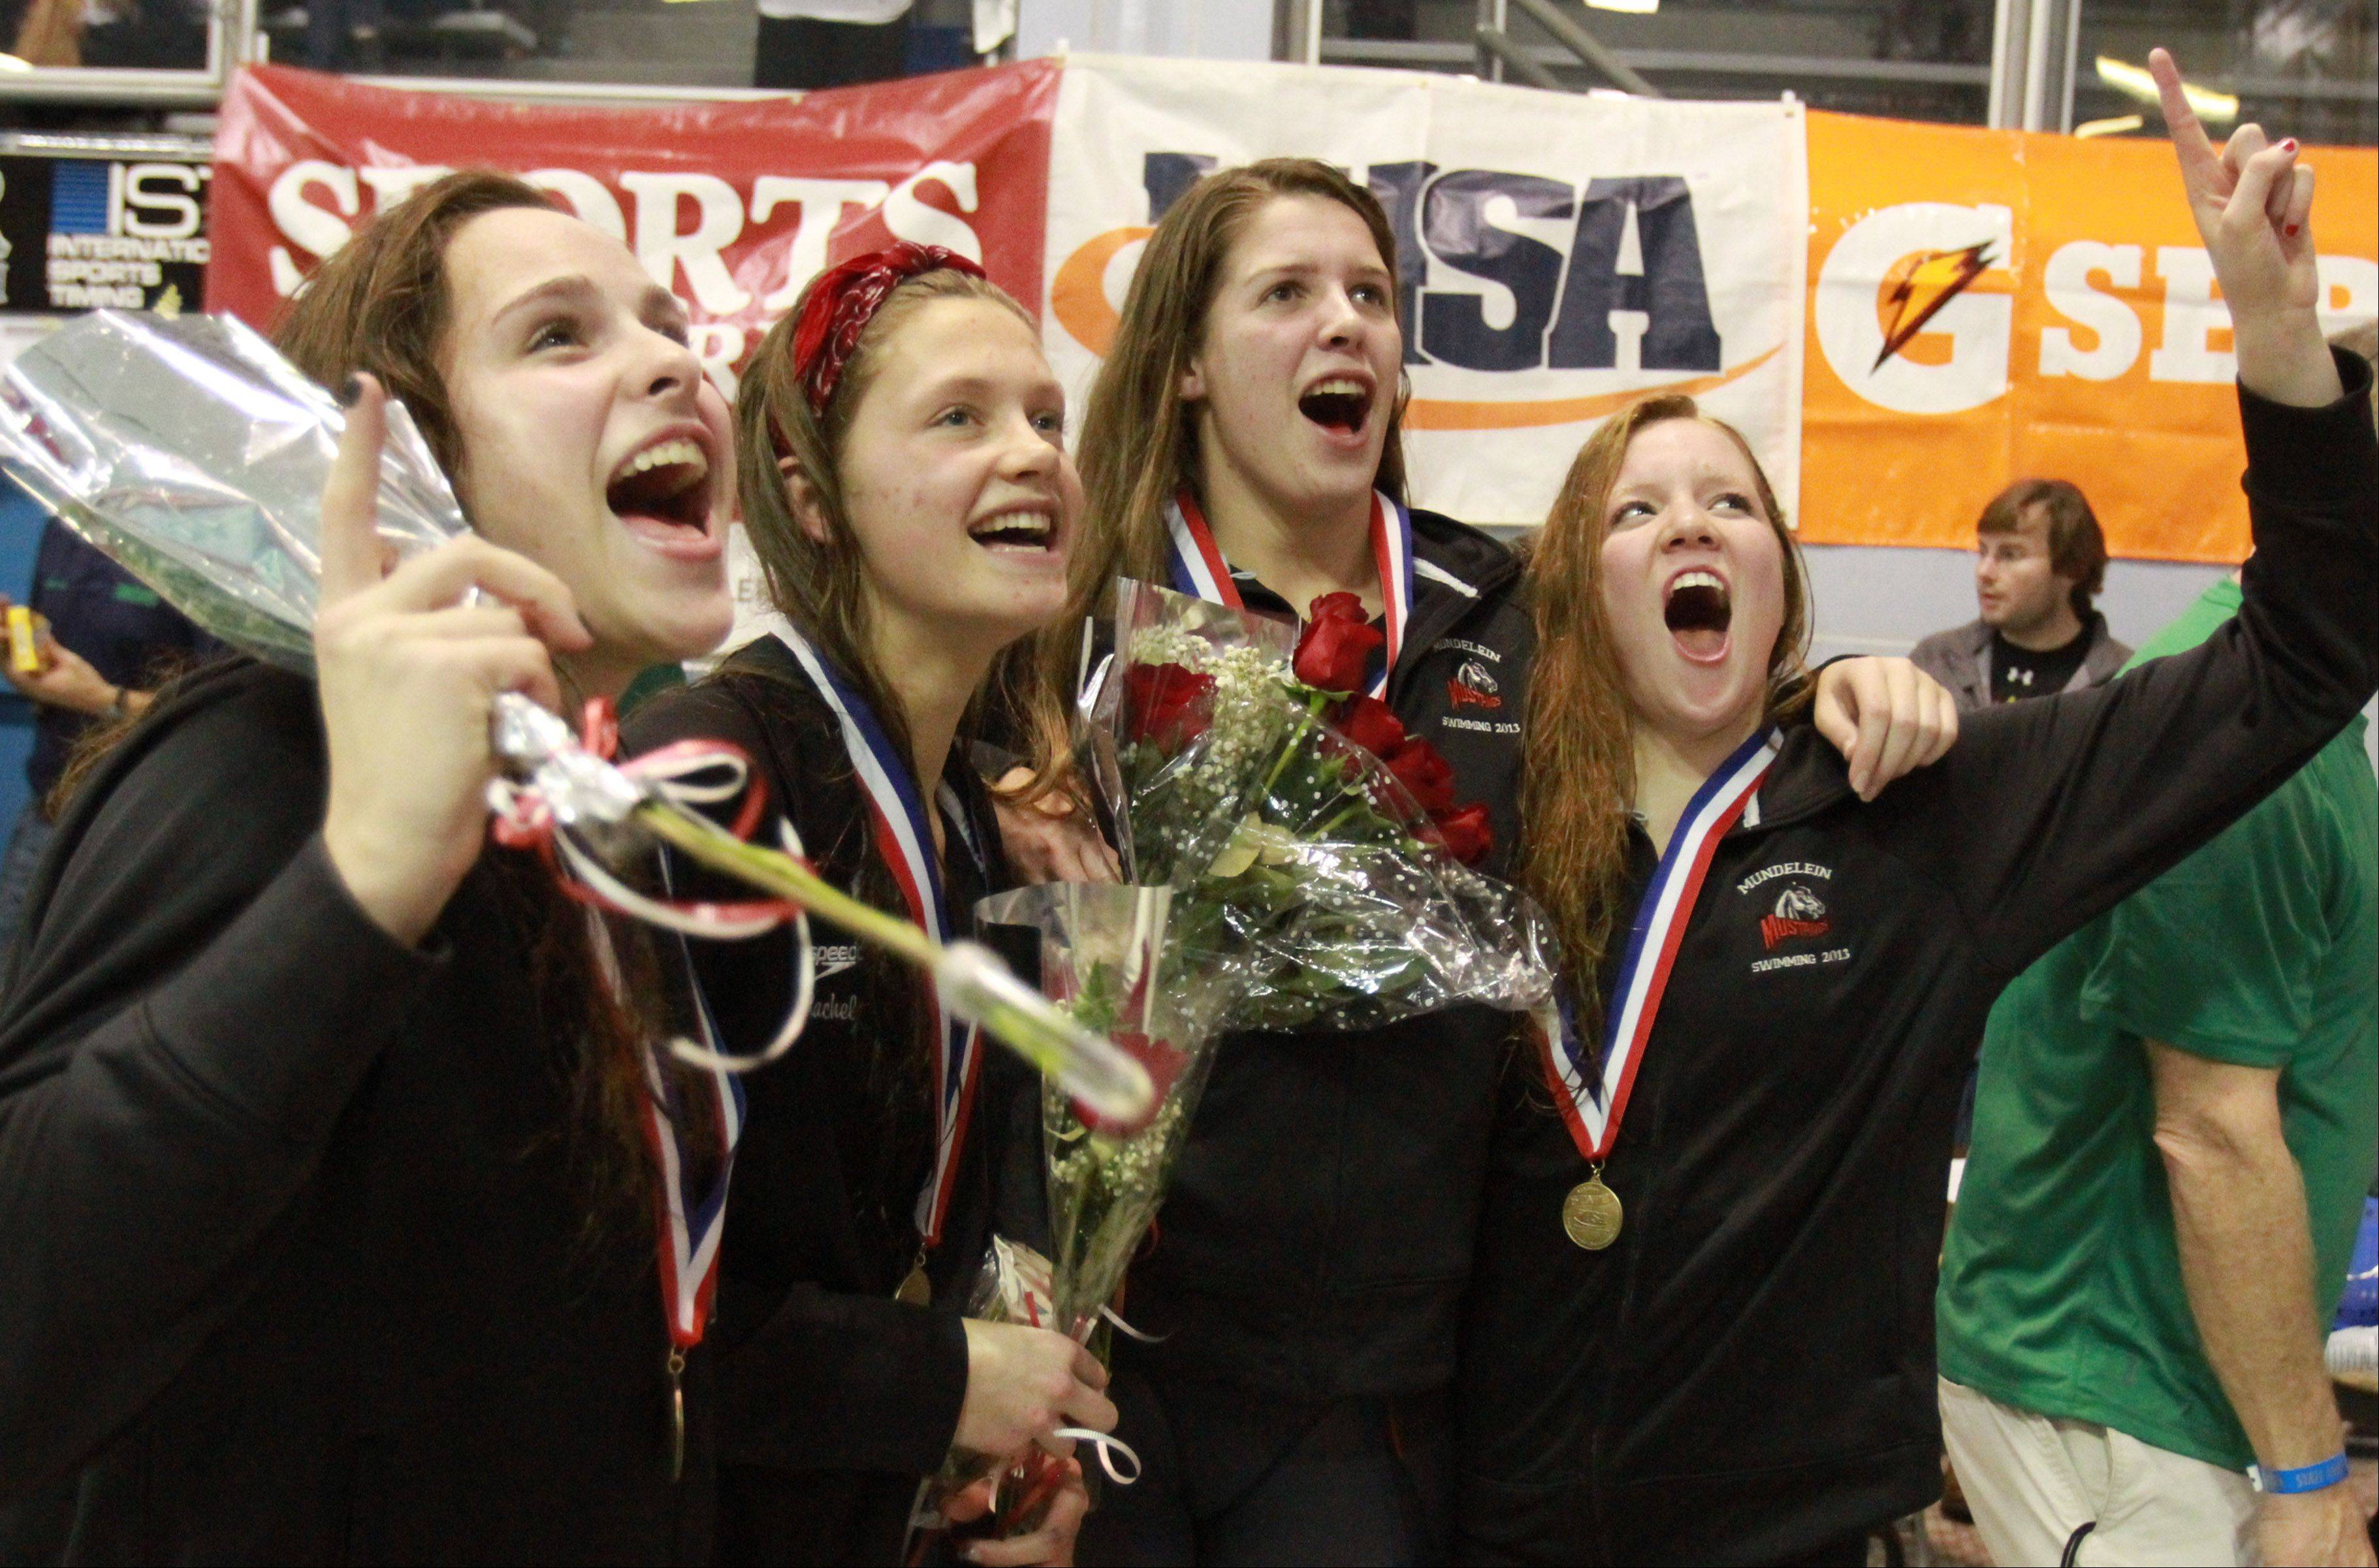 Mundelein's 200-yard freestyle relay team, Erin Falconer, Jennifer Kordik, Rachel Robb and Karrie Kozokar celebrate their first-place finish at Saturday's state swimming finals.